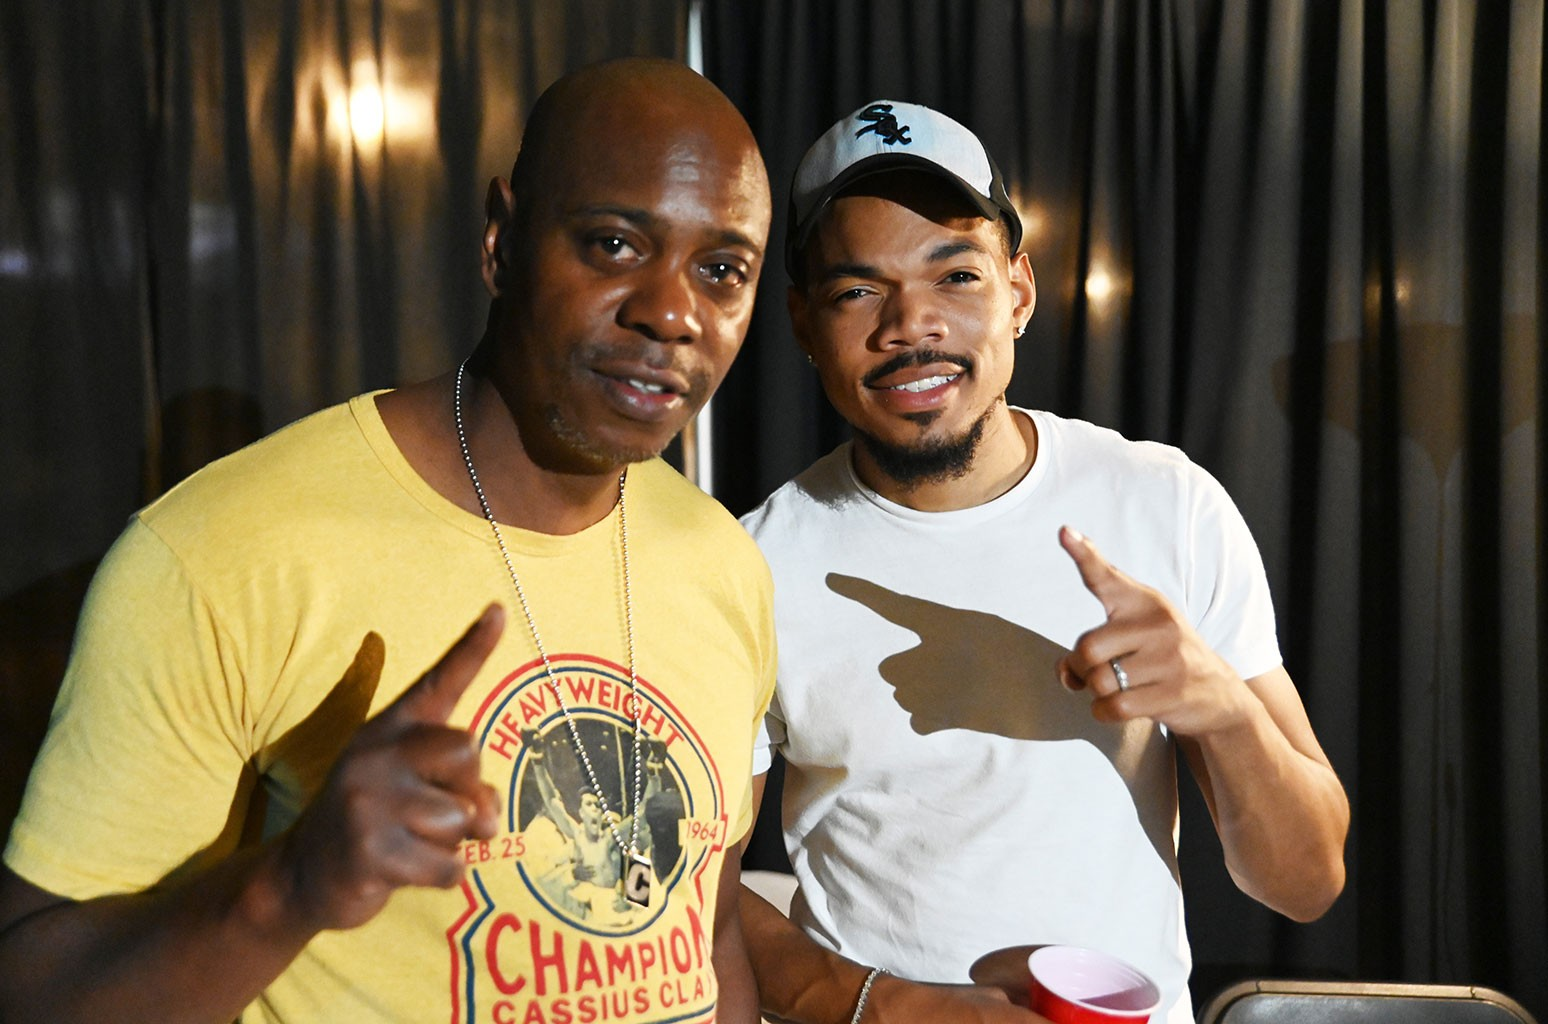 Dave Chappelle and Chance The Rapper